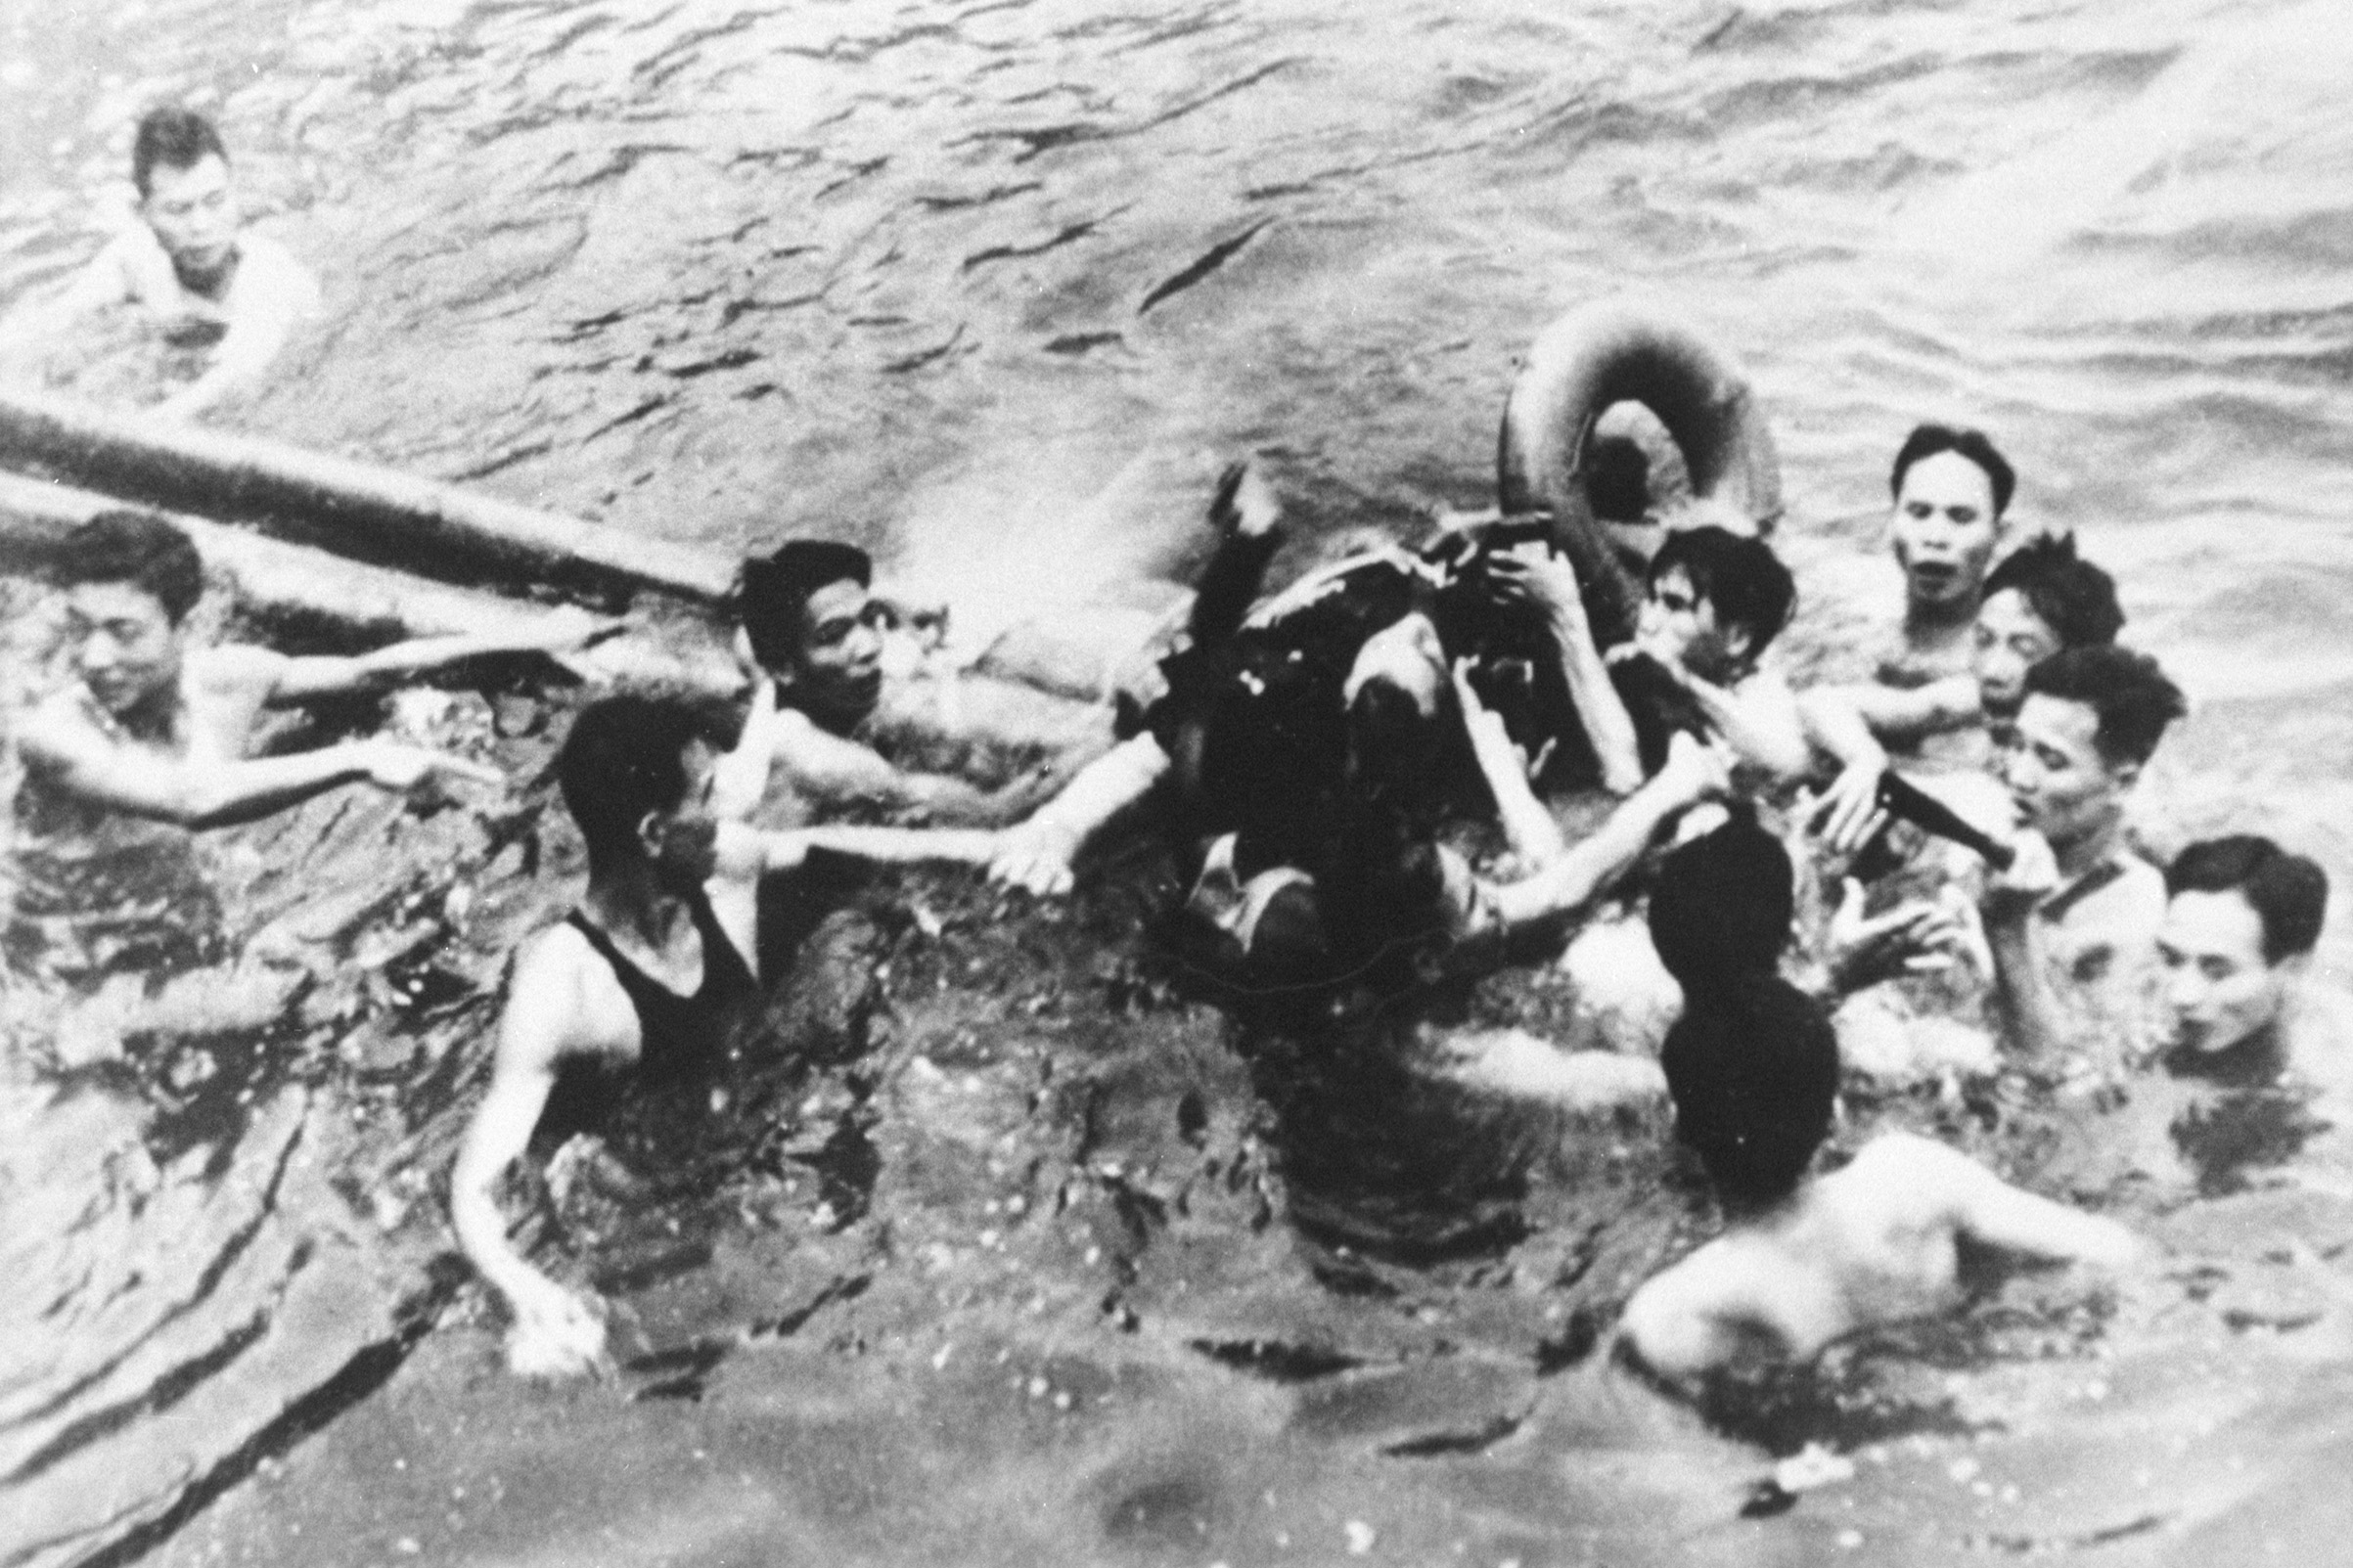 Senator John McCain is pulled out of a Hanoi lake by North Vietnamese army soldiers and civilians on Oct. 26, 1967.